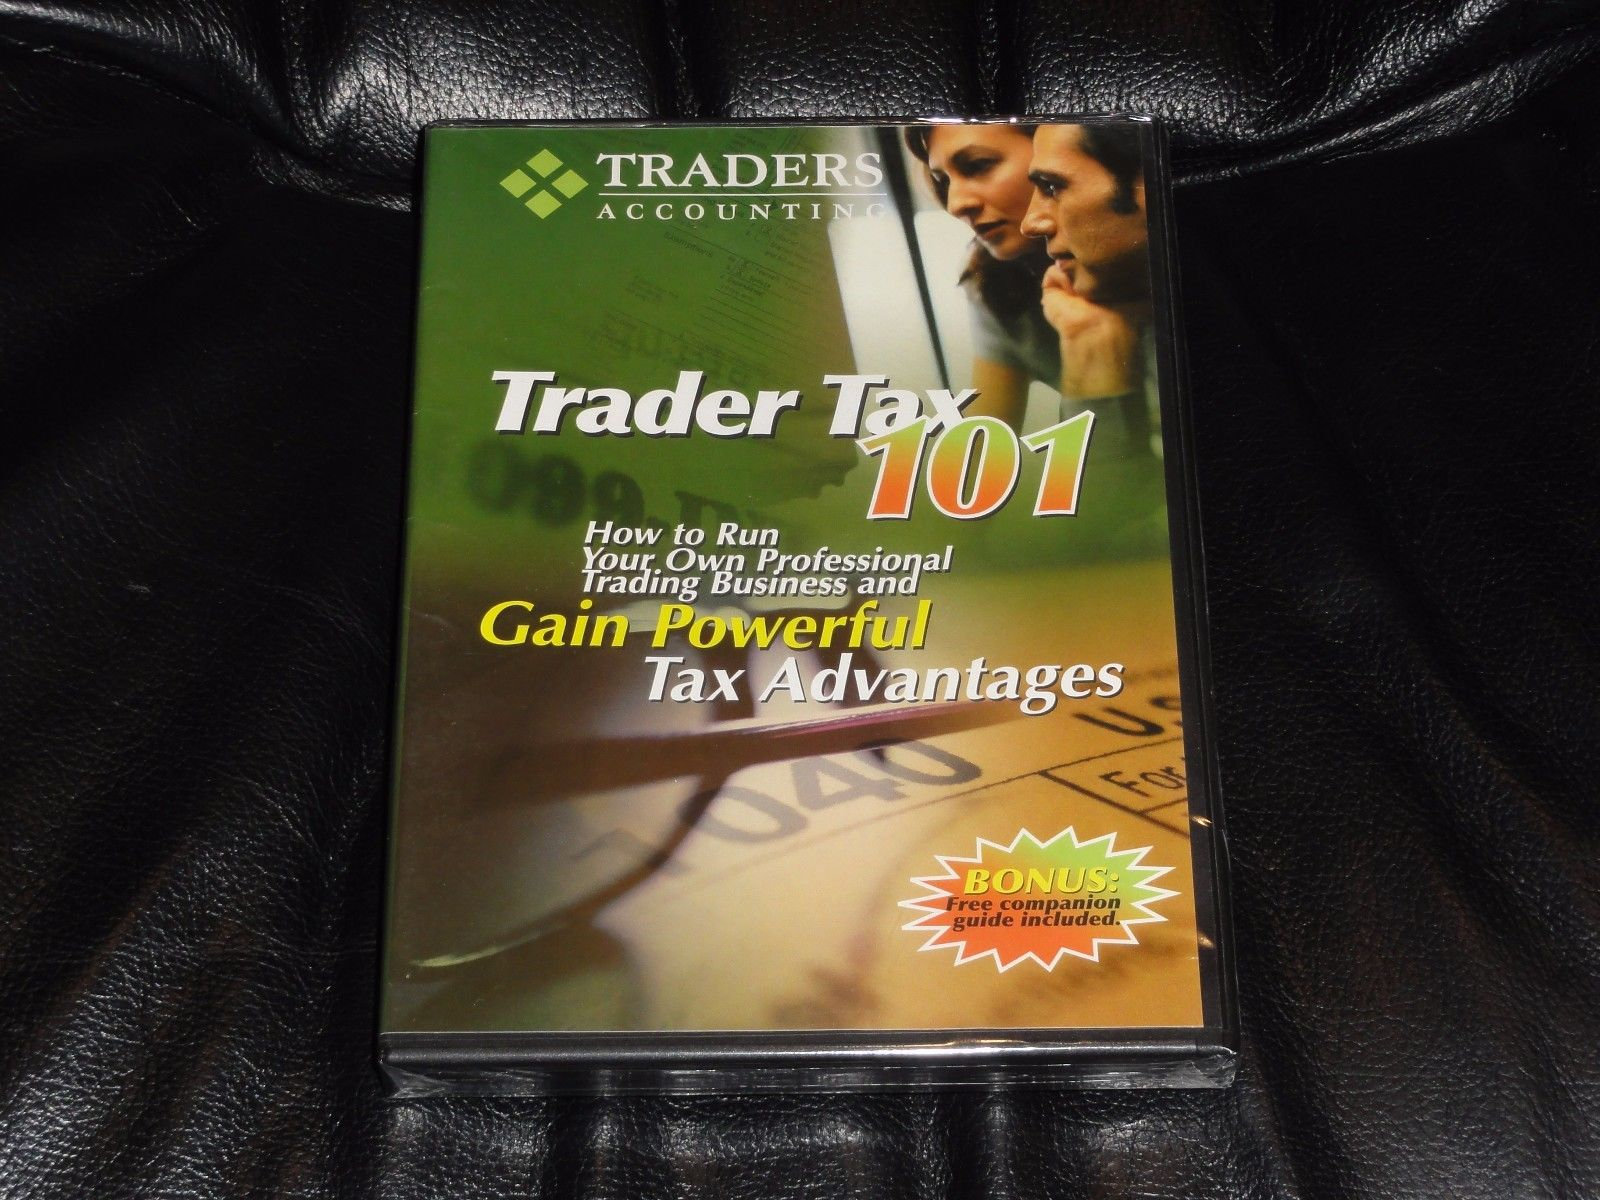 Traders Accounting Jim Crimmins Trader Tax 101 stocks options forex trading etf